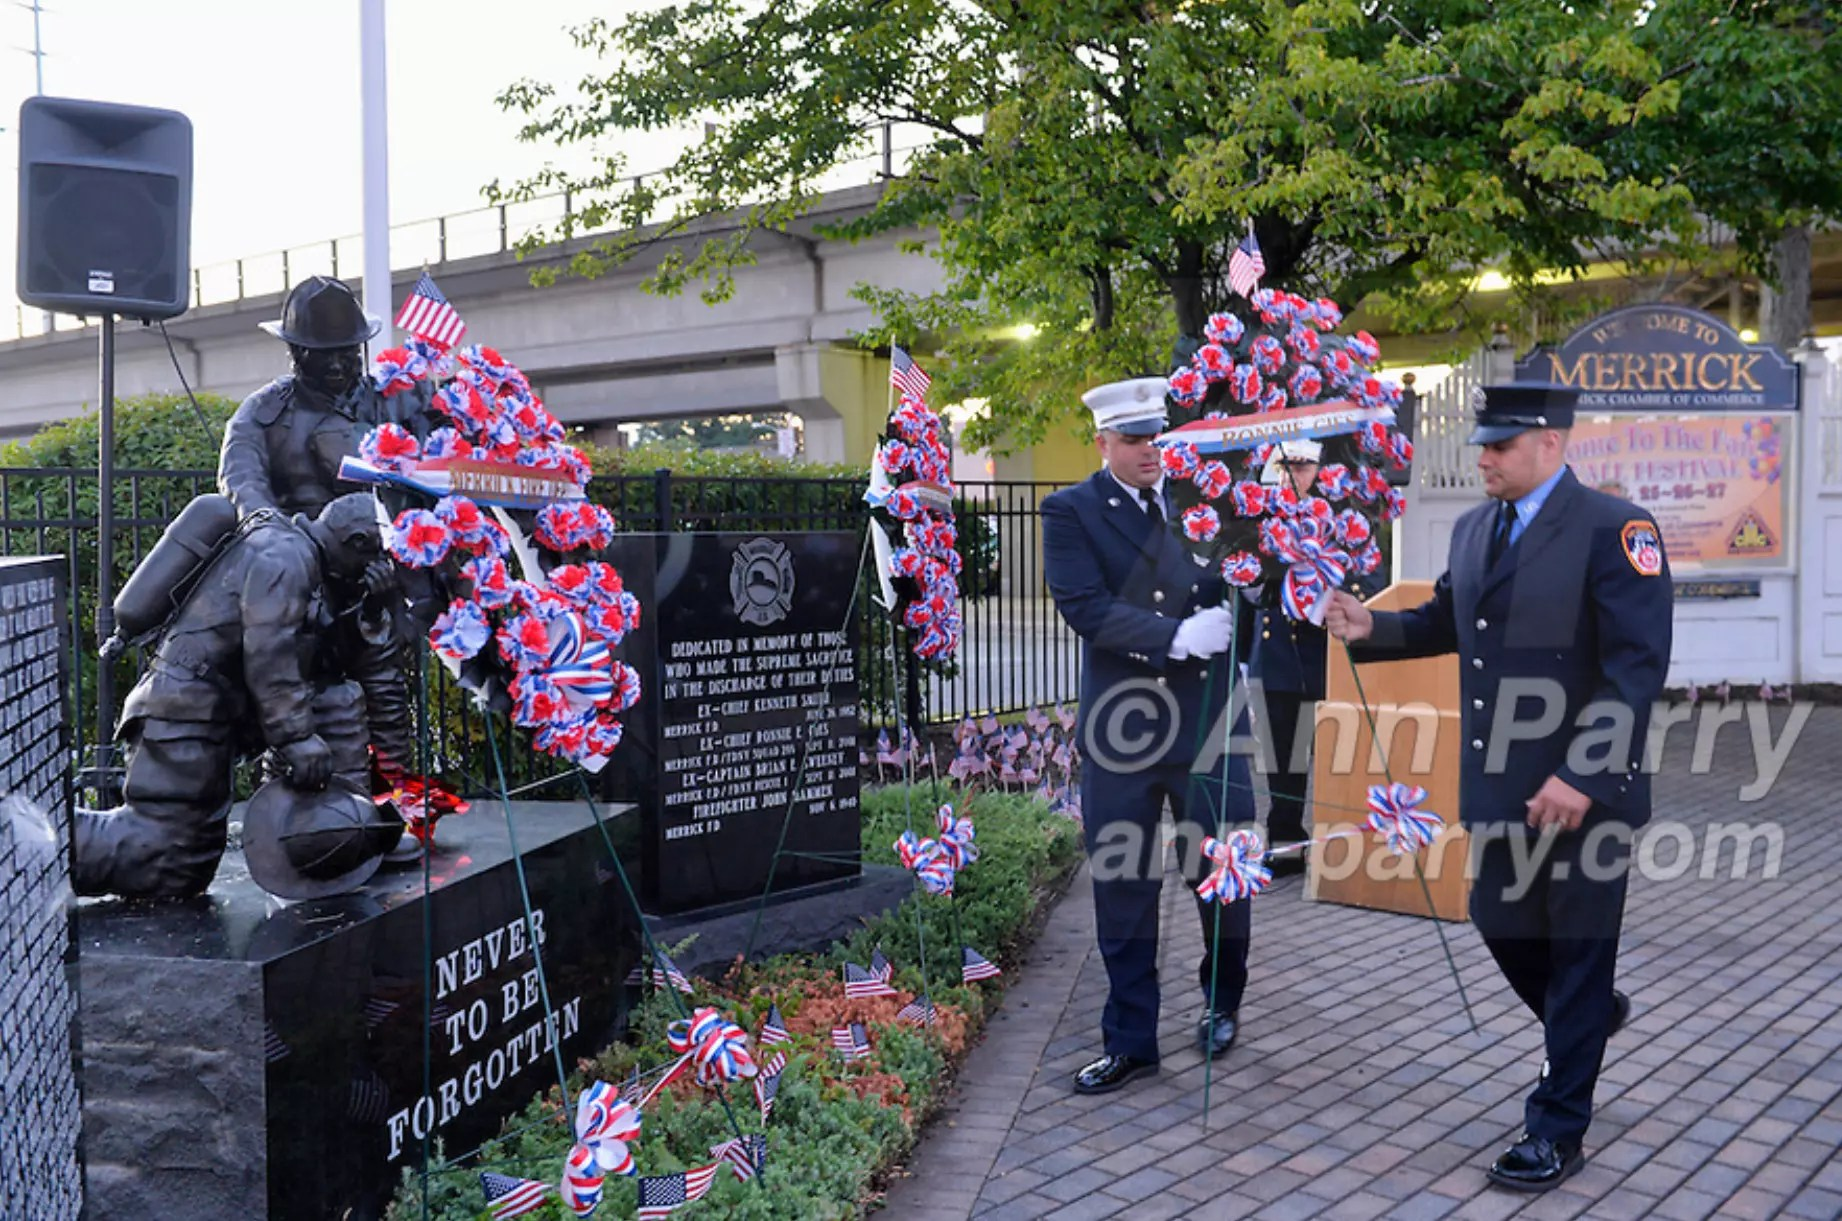 Merrick, NY, USA. Sept. 11, 2015. Merrick and NYC firefighters place a wreath in memory of Ex-Chief Ronnie E. Gies at Merrick Memorial Ceremony for Merrick volunteer firefighters and residents who died due to 9/11 terrorist attack at NYC Twin Towers. Gies, of Merrick F.D. and FDNY Squad 288, and Ex-Captain Brian E. Sweeney, of Merrick F.D. and FDNY Rescue 1, died responding to the attacks on September 11, 2001.